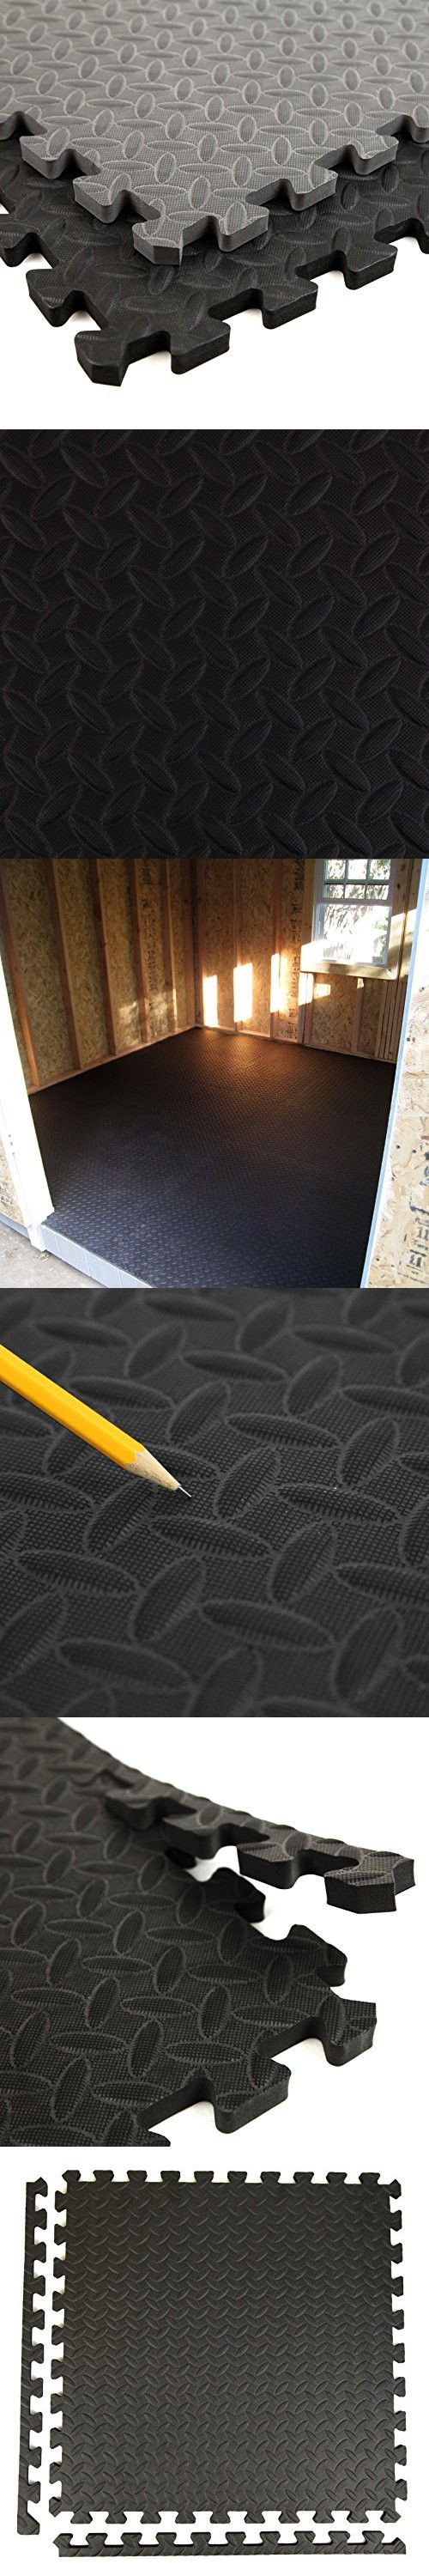 Incstores Diamond Soft Extra Thick Anti Fatigue Interlocking Foam Tiles (6 Pack, Black) - 2ft x 2ft Tiles Ideal for Laundry Room Flooring, Kitchen Mats, Exercise Mats, Garage Mats and More